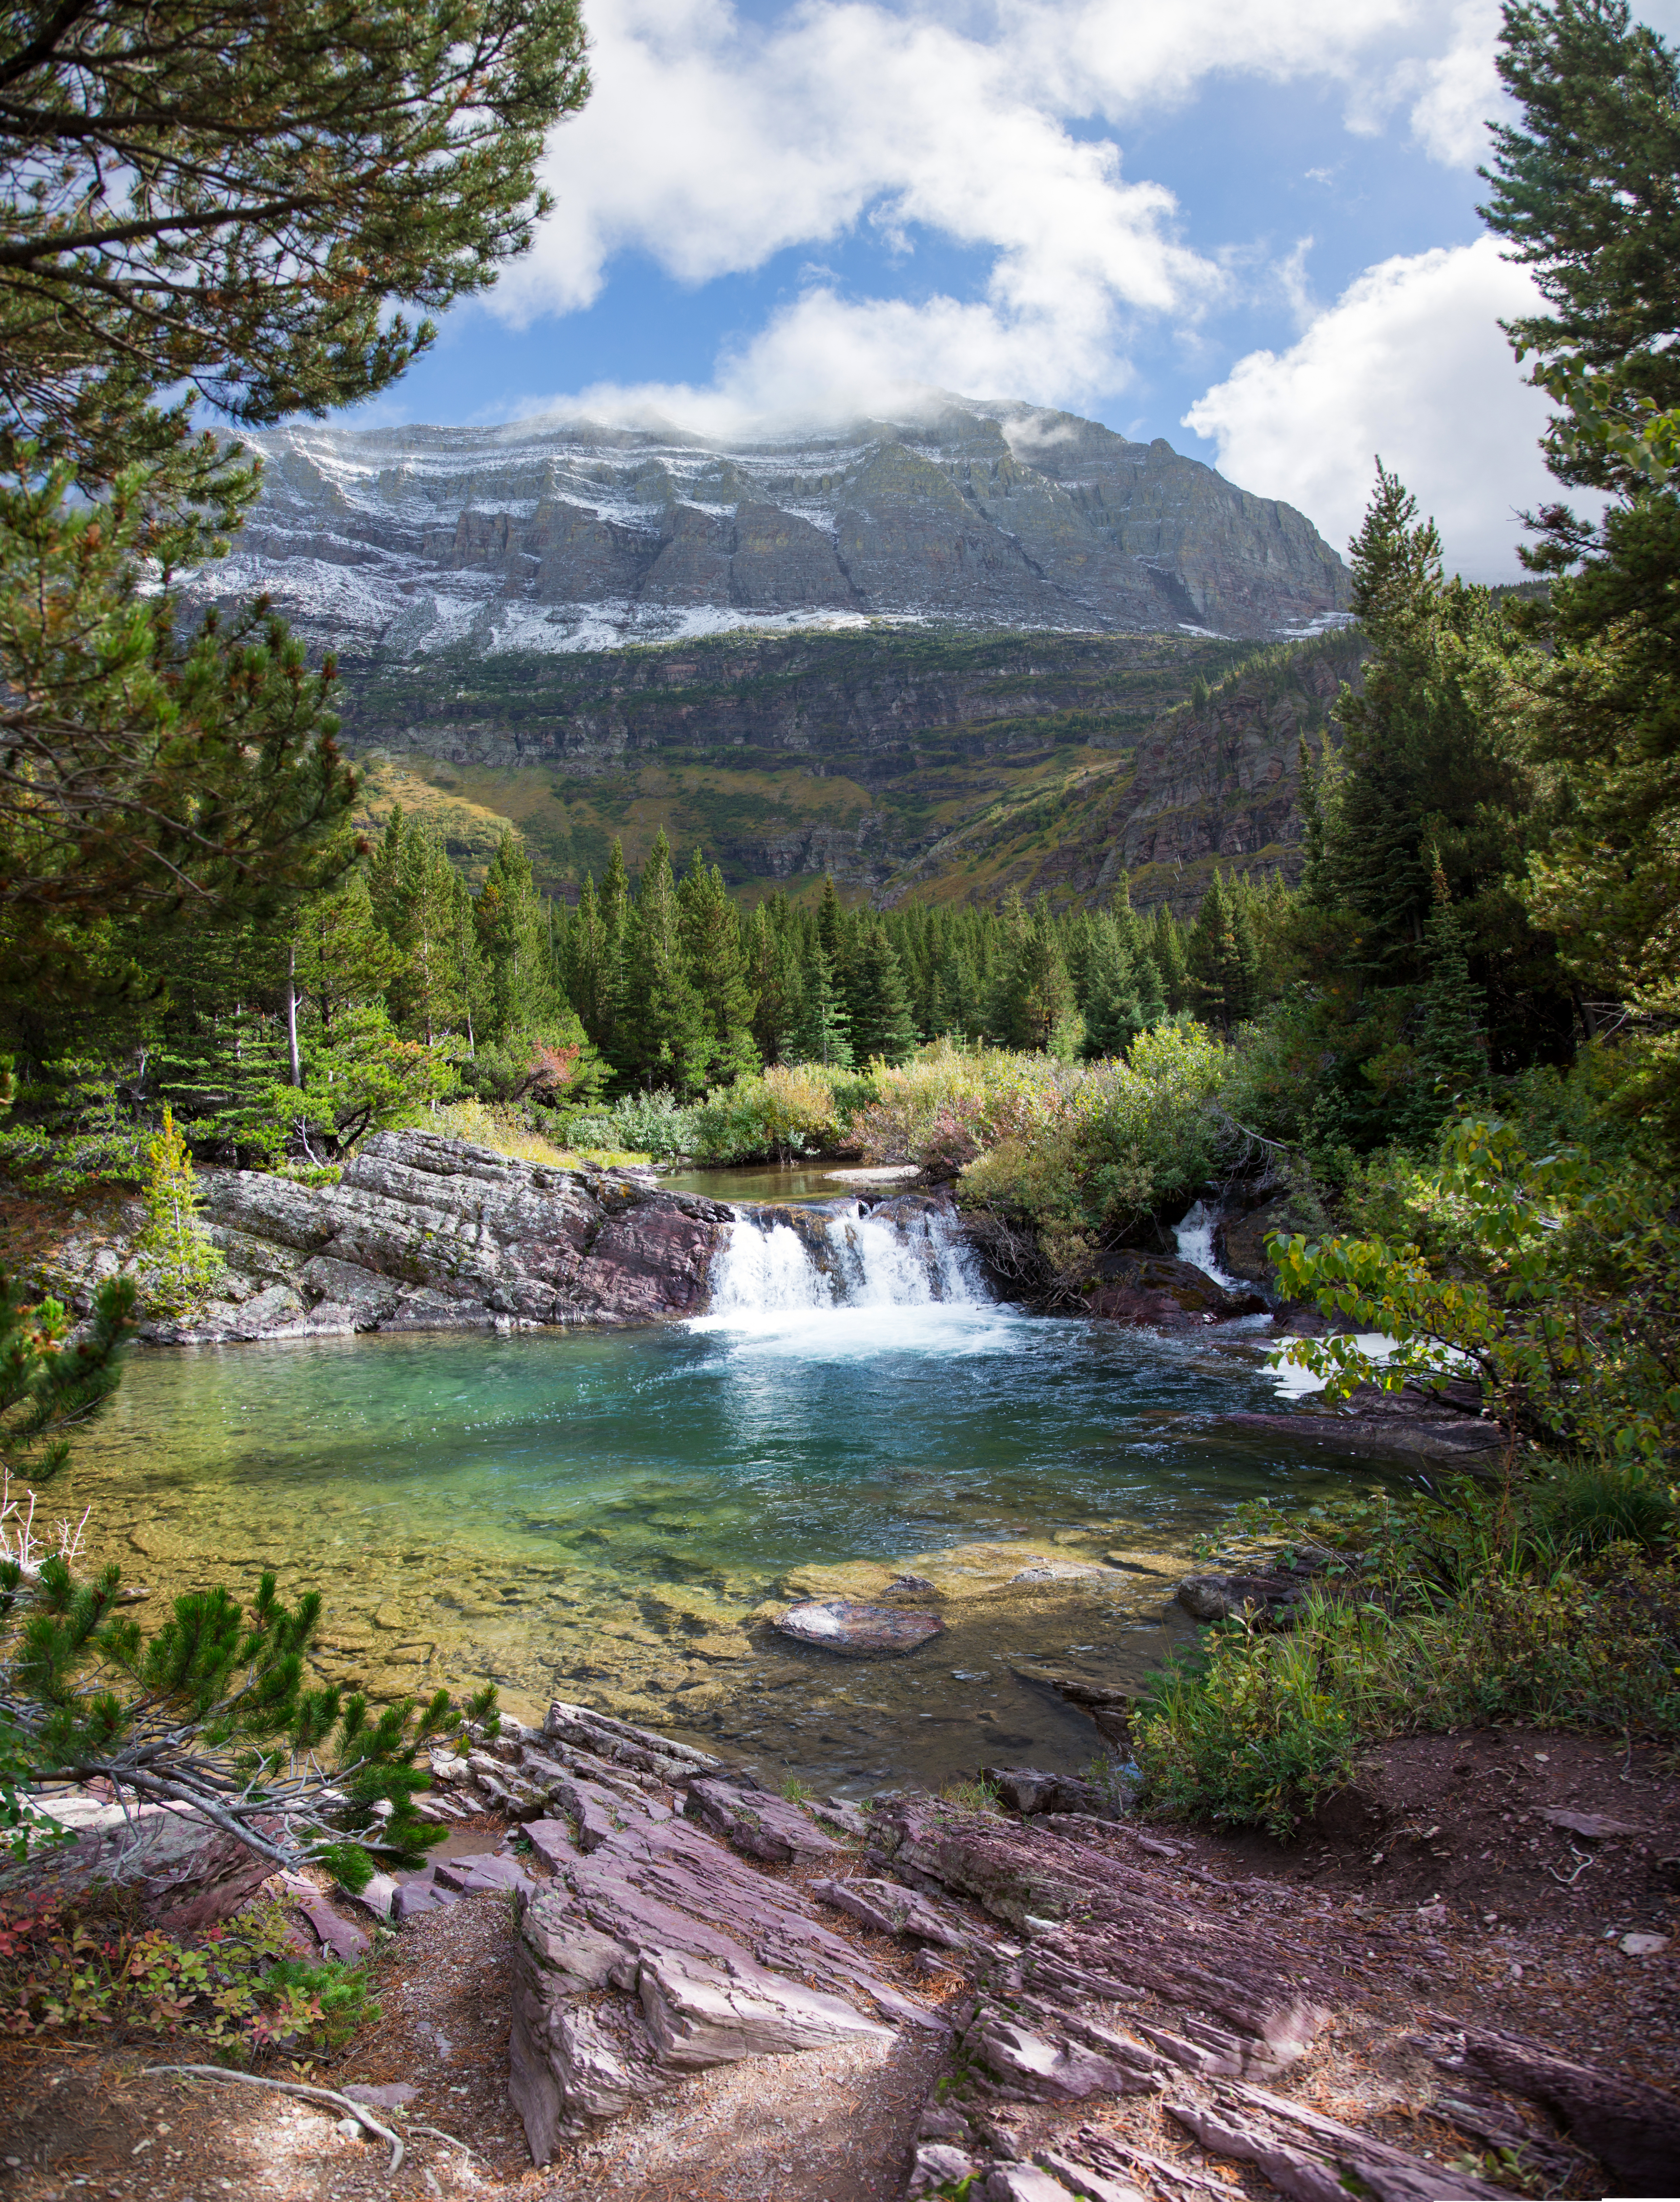 swiftcurrent trail pano waterfall